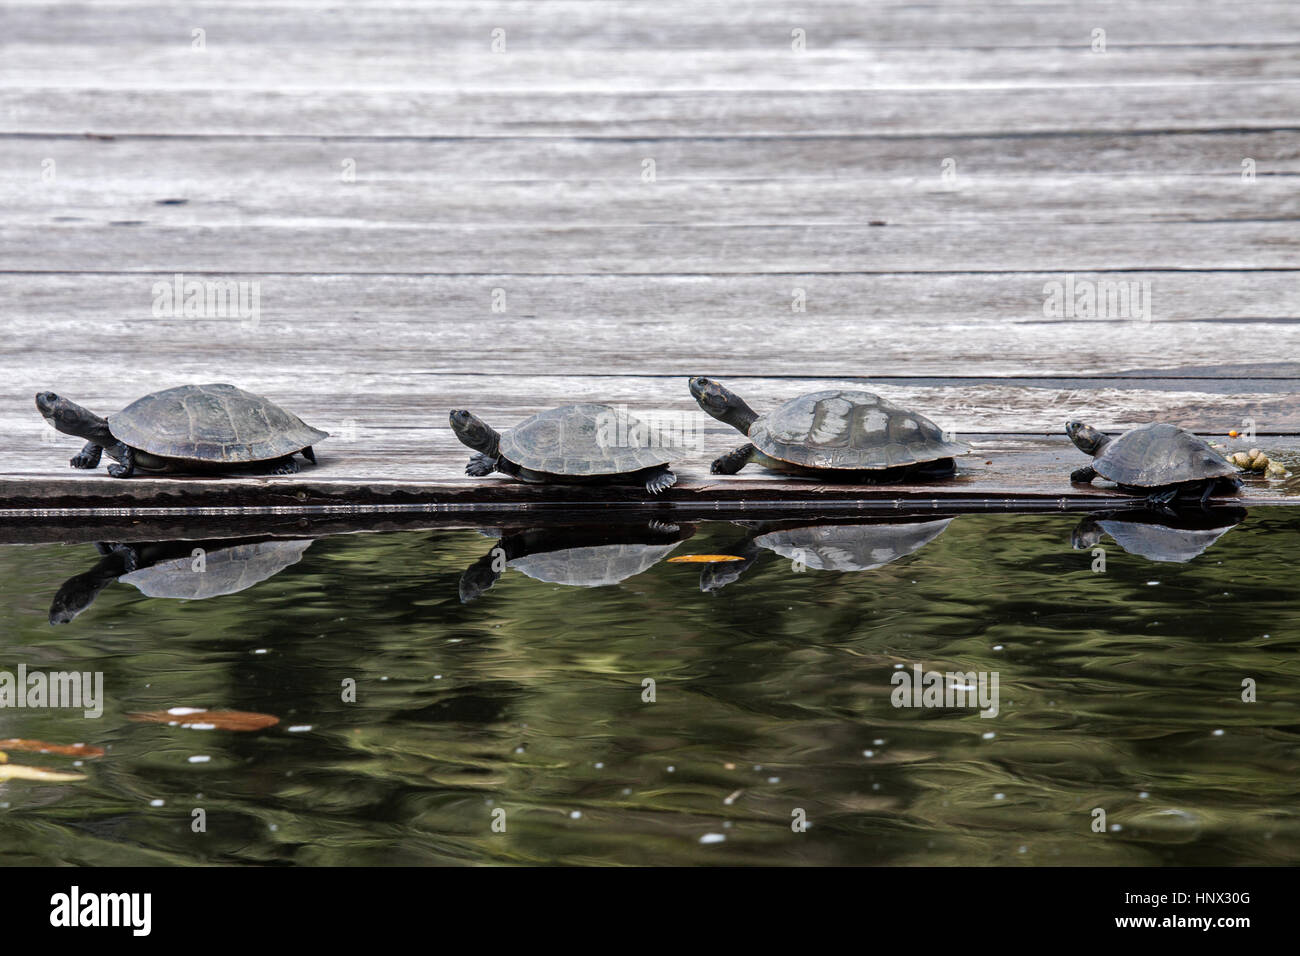 Yellow spotted river turtles basking on floating pier in Brazil - Stock Image